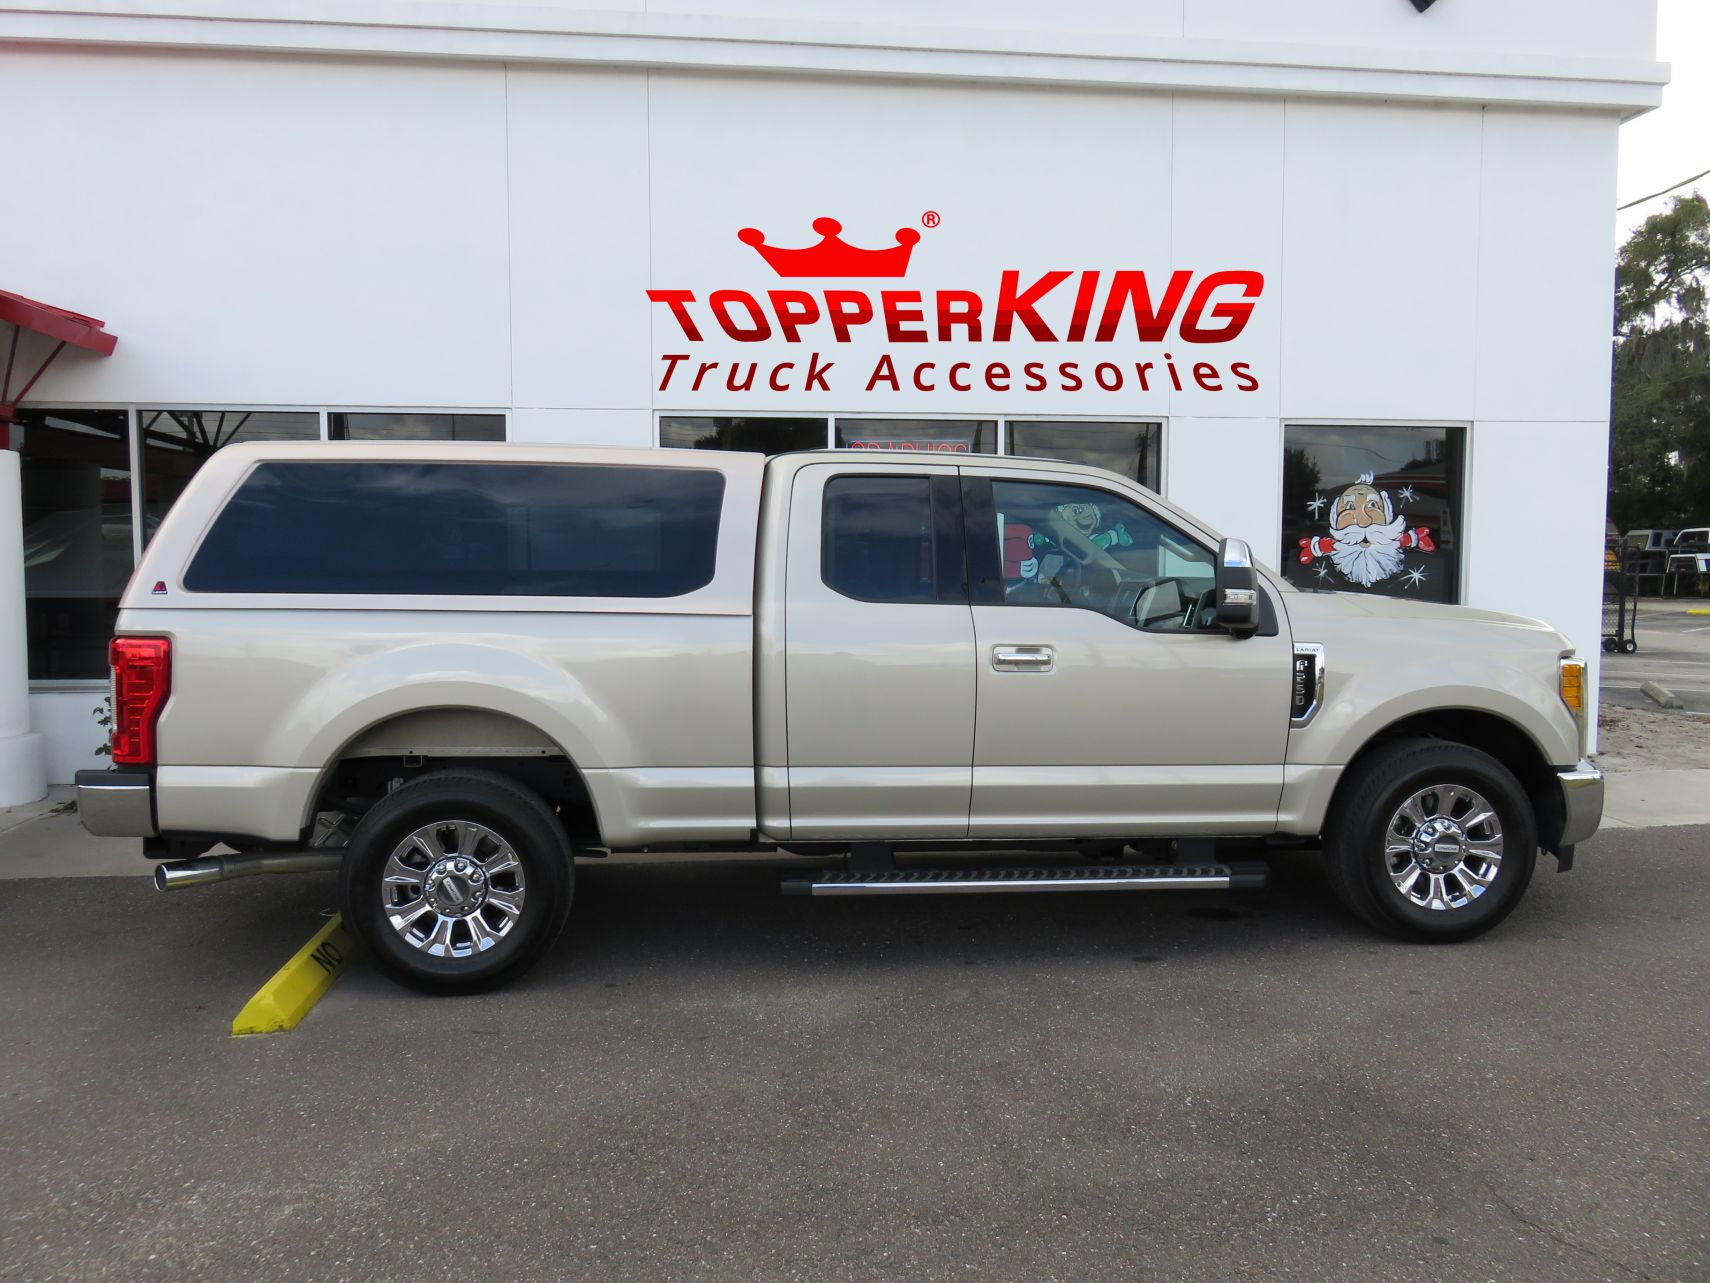 2017 Ford F250 with LEER 100XQFiberglass Topper, Side Steps, Hitch, Tint by TopperKING in Brandon FL 813-689-2449 or Clearwater FL 727-530-9066. Call Now!